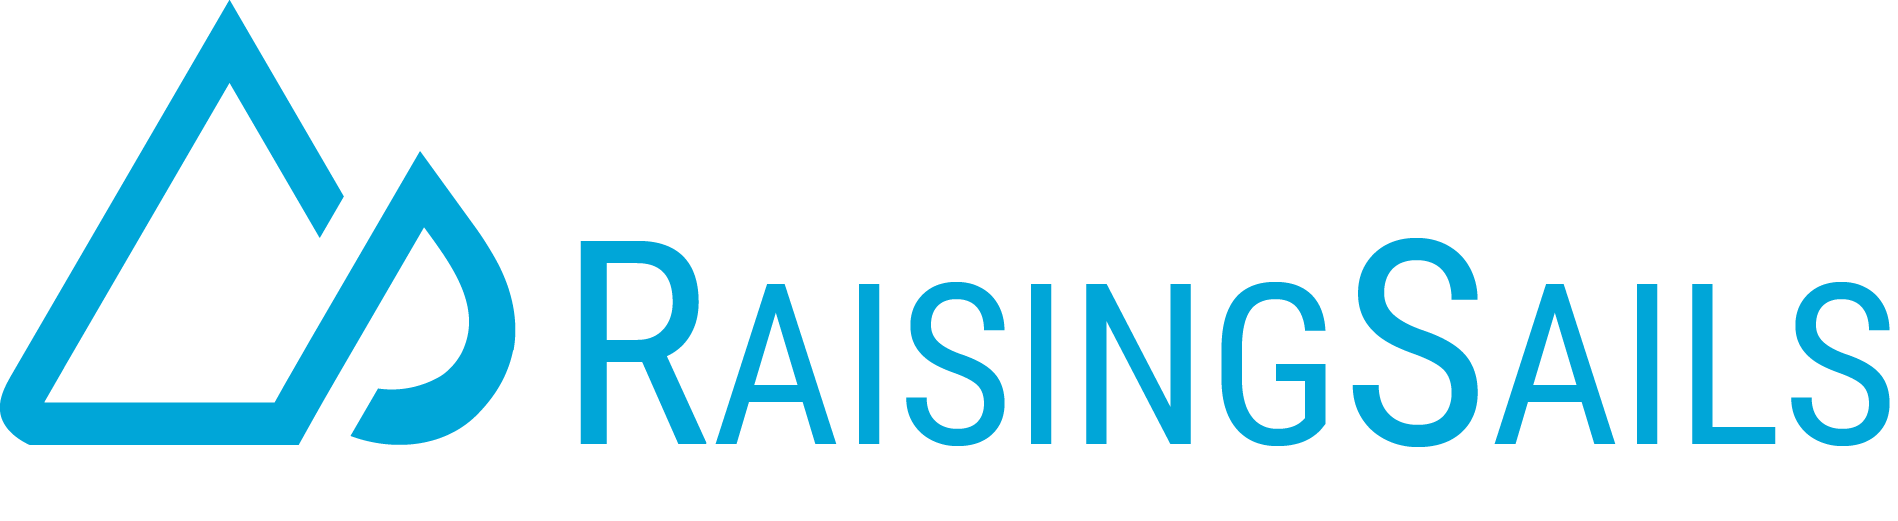 Proposify Helps RaisingSails Land Big Brand Clients With Beautiful Proposals